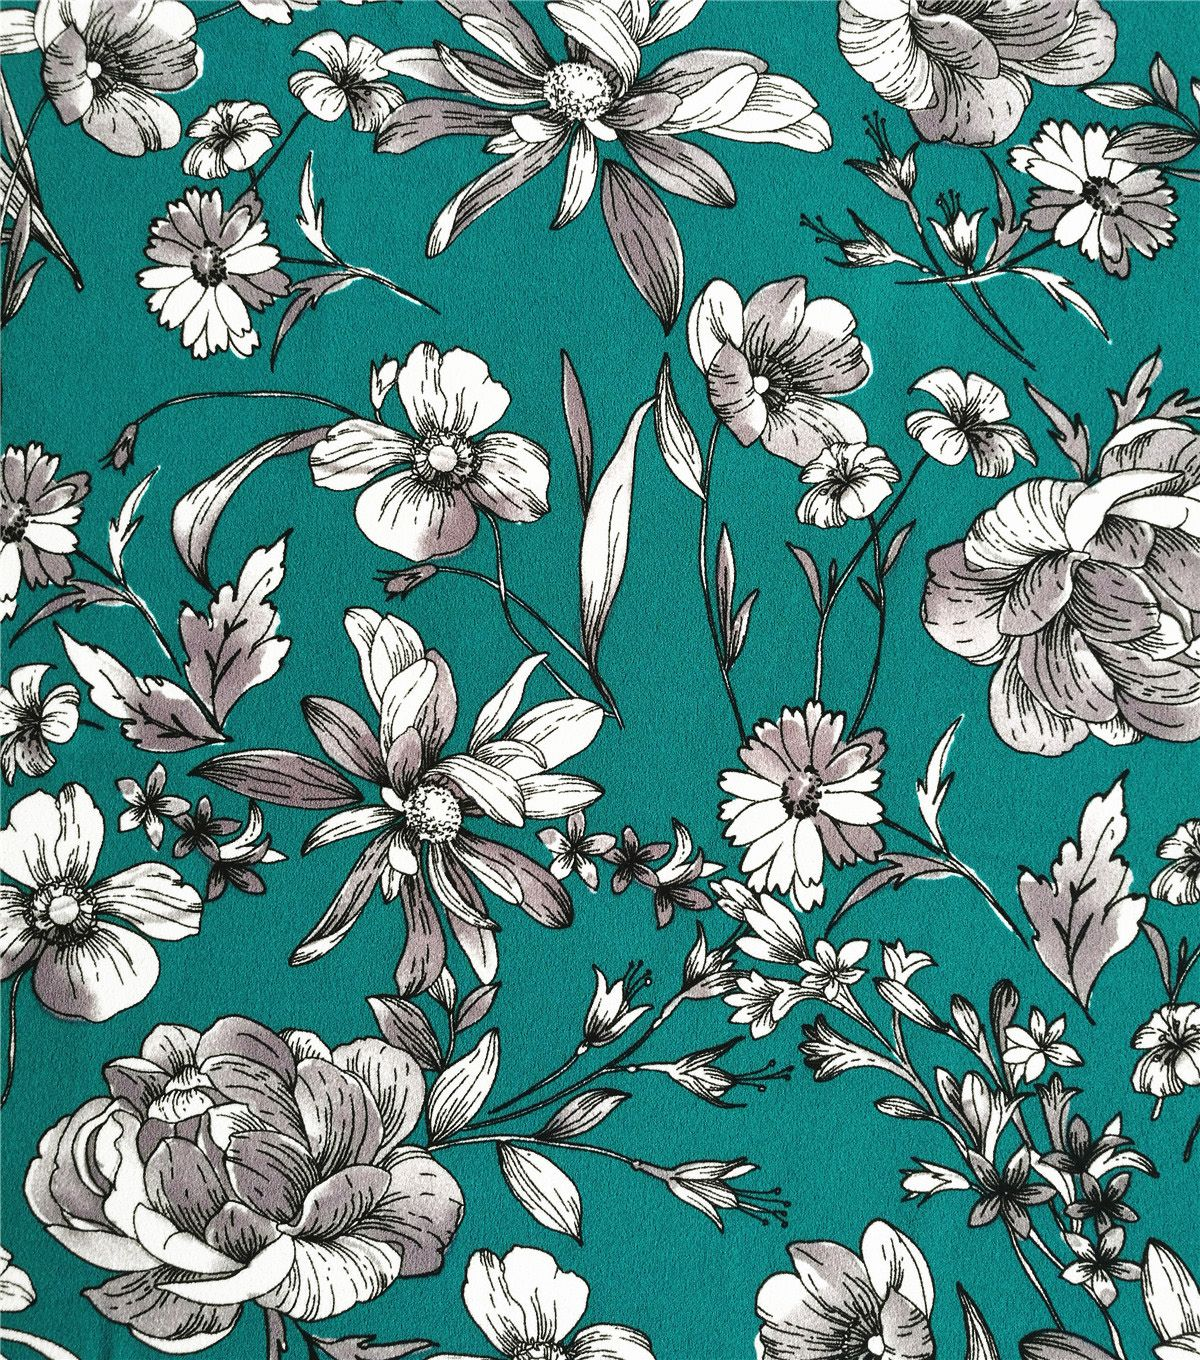 Stretch Crepe Knit Fabric White Shaded Floral on Teal